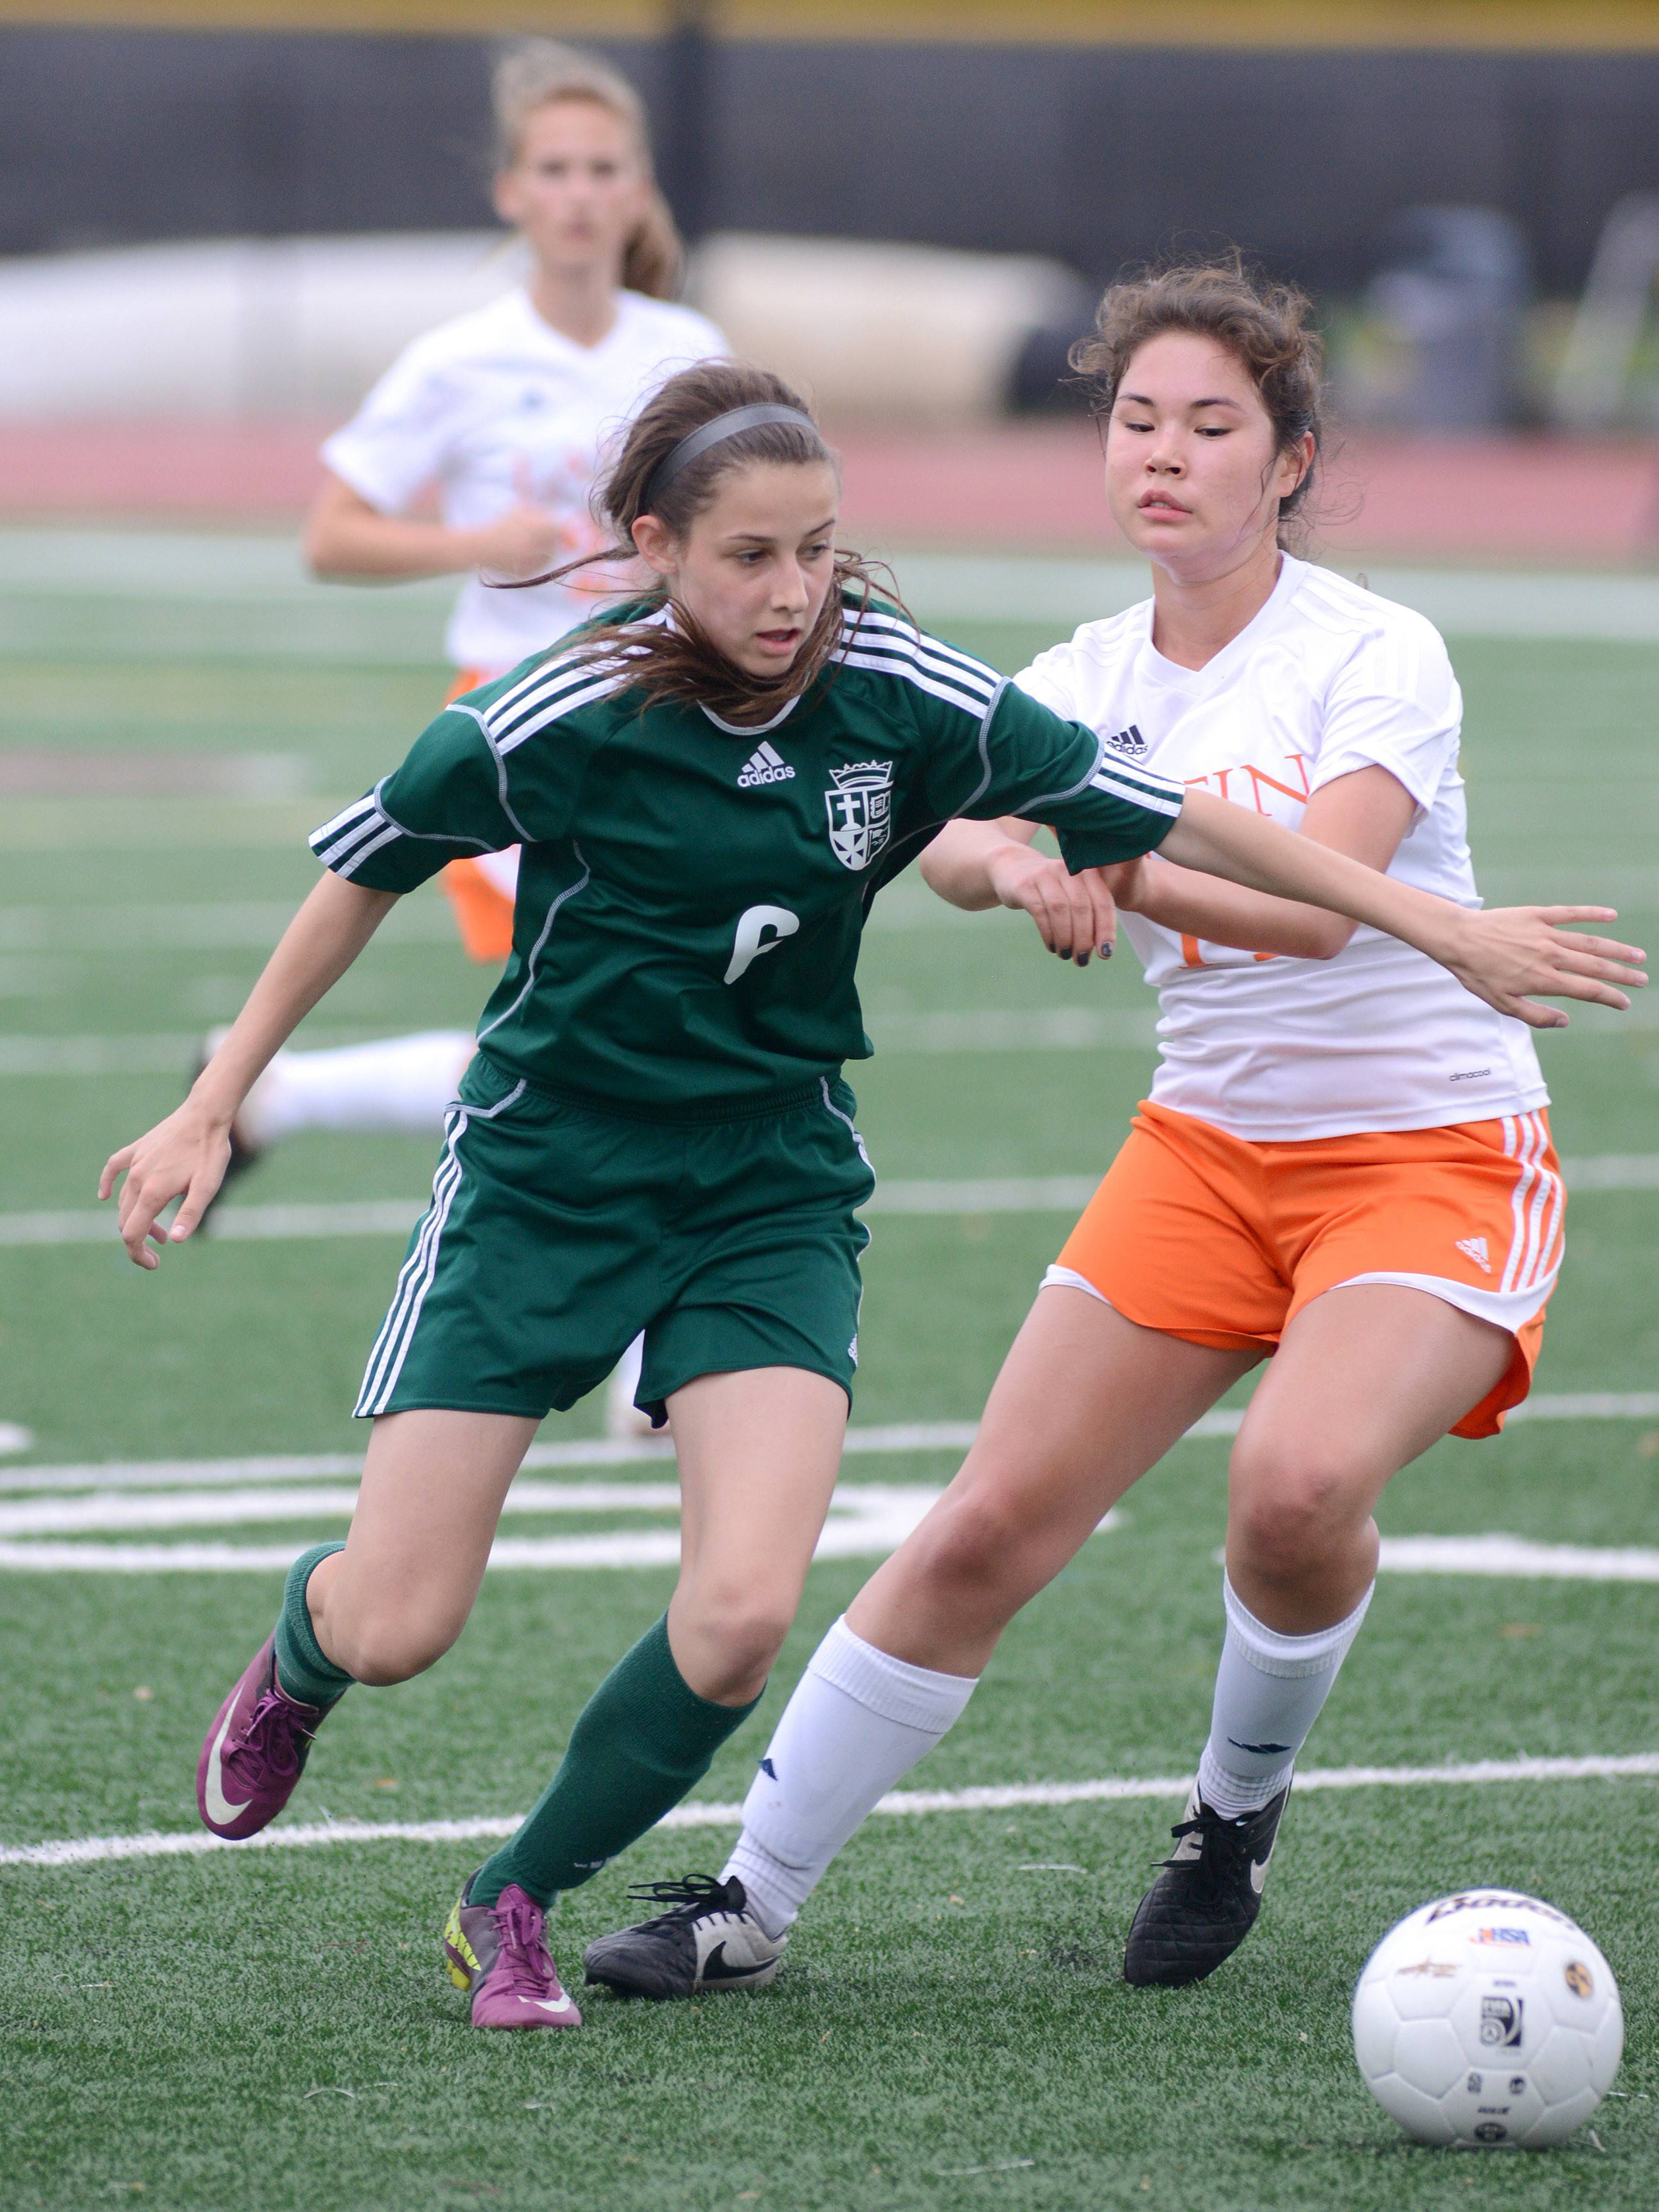 St. Edward's Chelsea Gnan, left, and Chicago Latin's Jane Aguler battle for the ball in the first half of the Class 1A supersectional at Concordia University in River Forest on Tuesday, May 27.